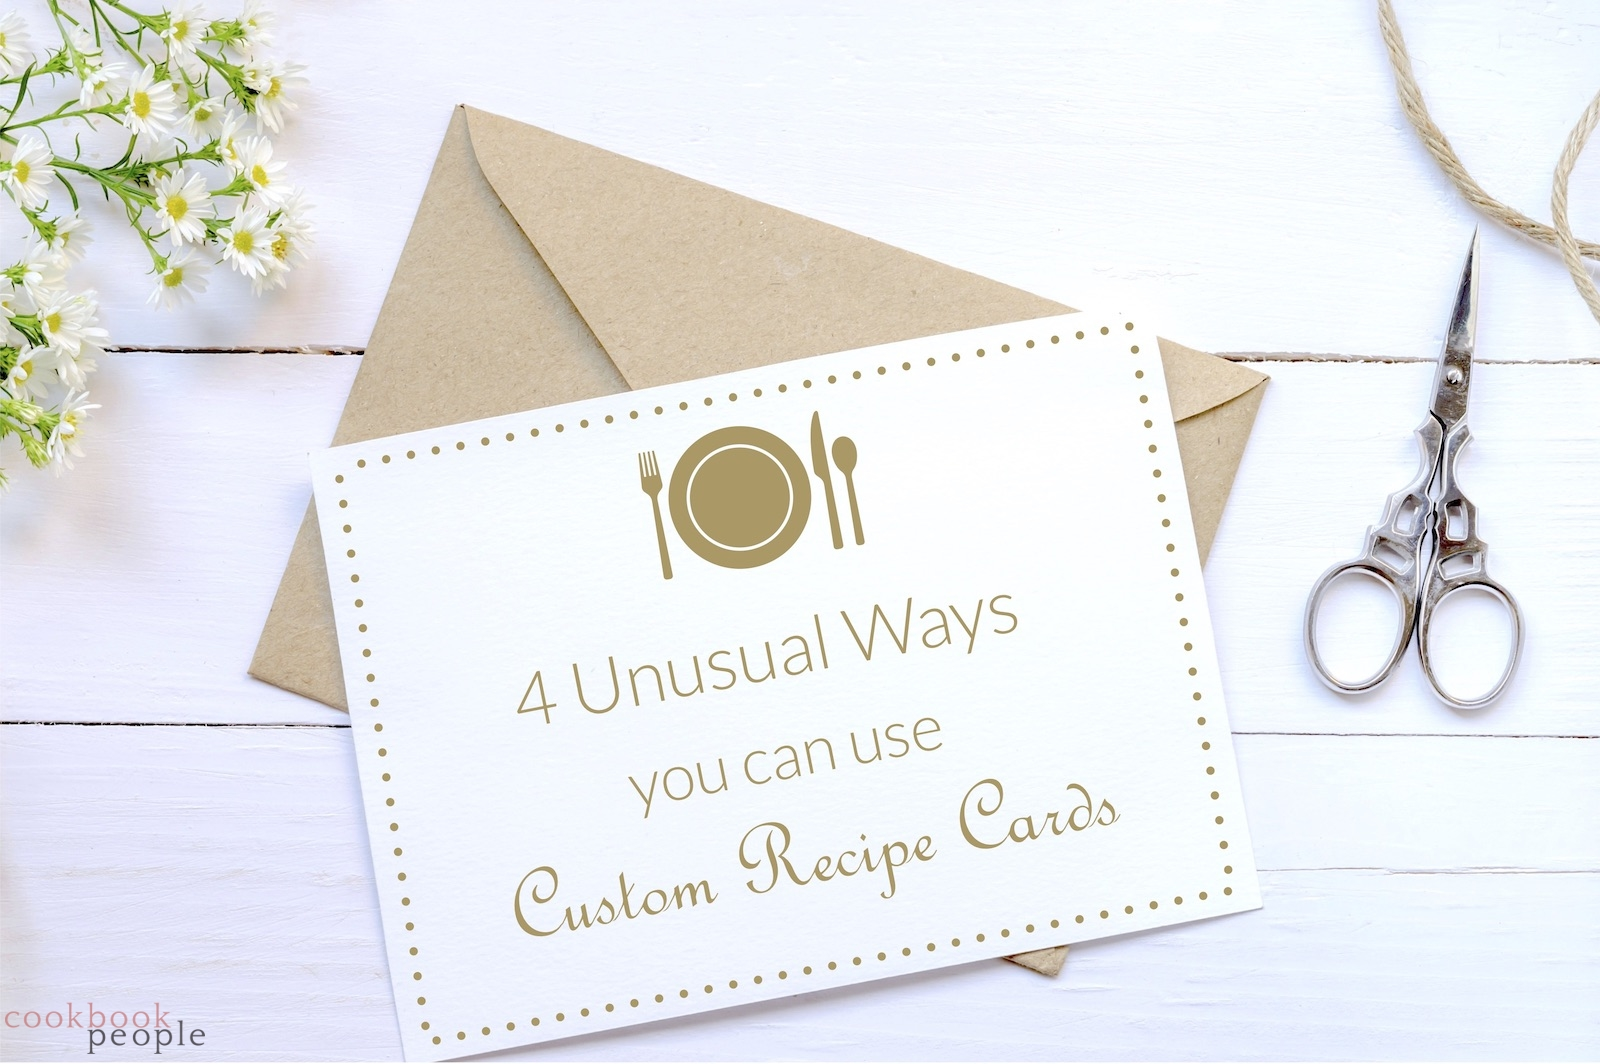 brown envelope, flowers, scissors and string with card featuring symbol of plate and cutlery and title: 4 Unusual Ways You Can Use Custom Recipe Cards